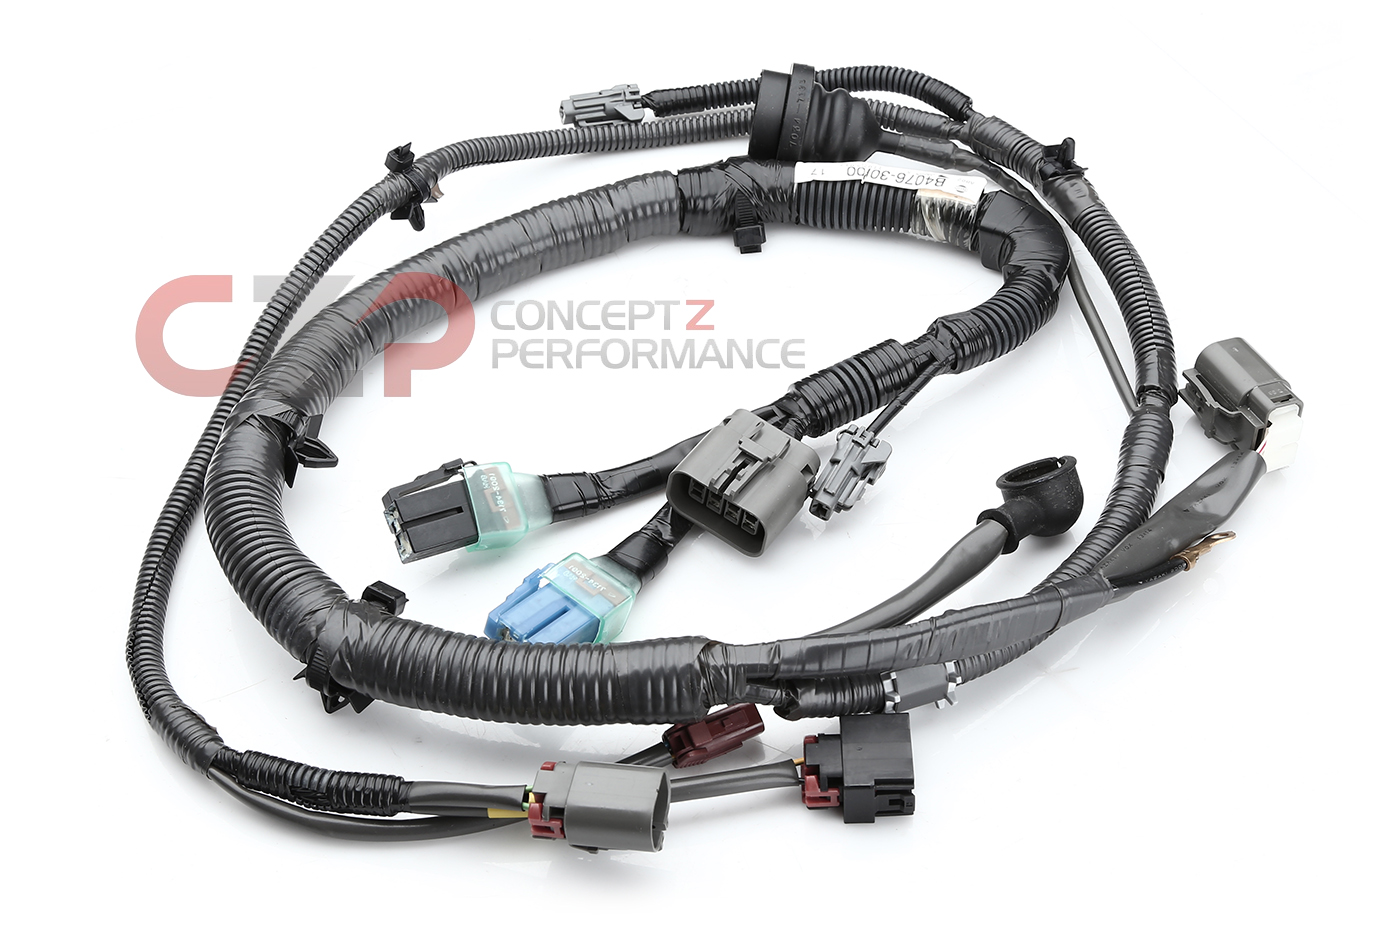 nissan infiniti nissan oem alternator to transmission harness mt manual transmission nissan